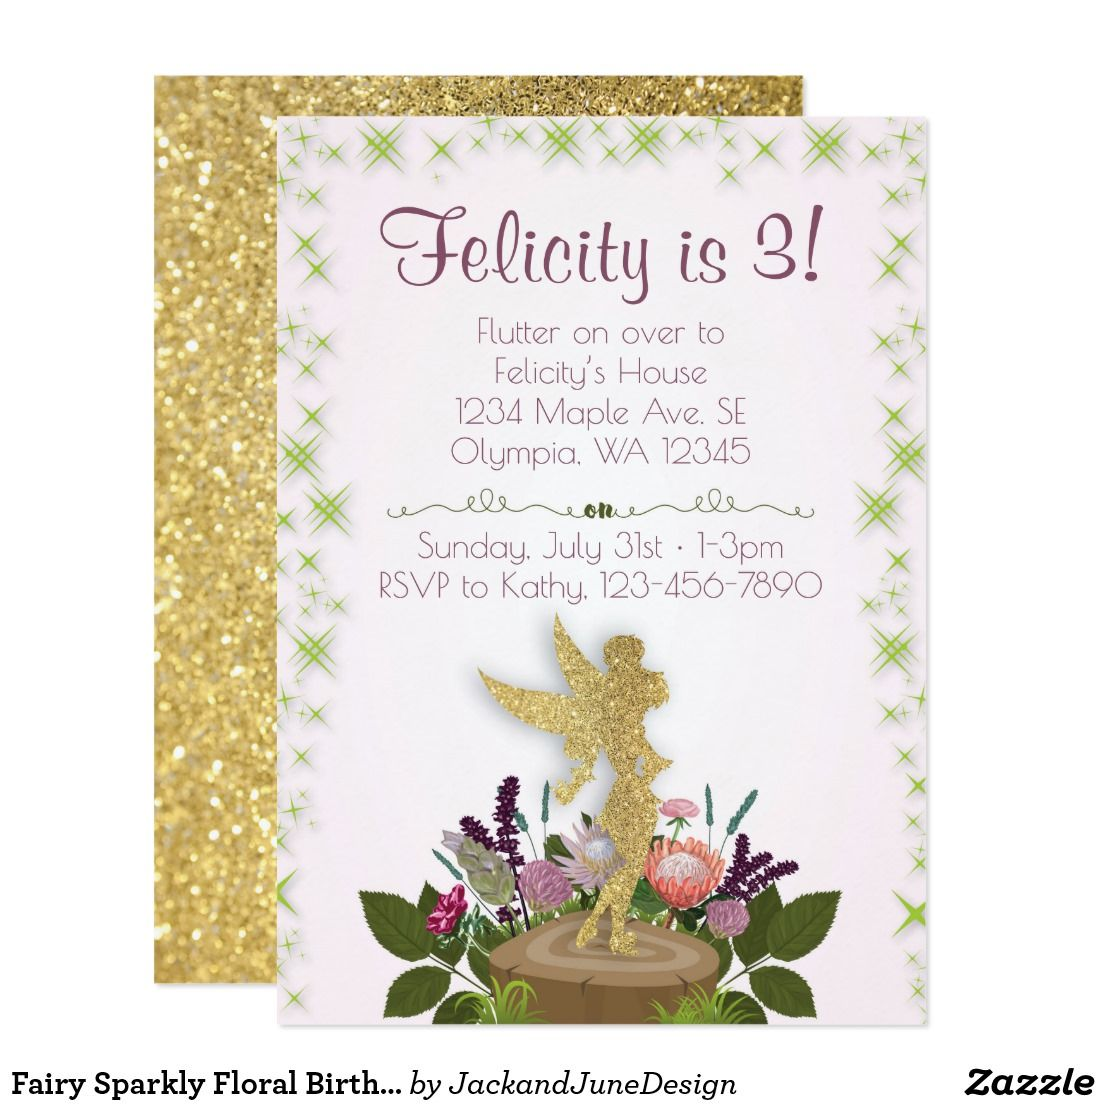 Fairy Sparkly Floral Birthday Party Invitation | Party invitations ...